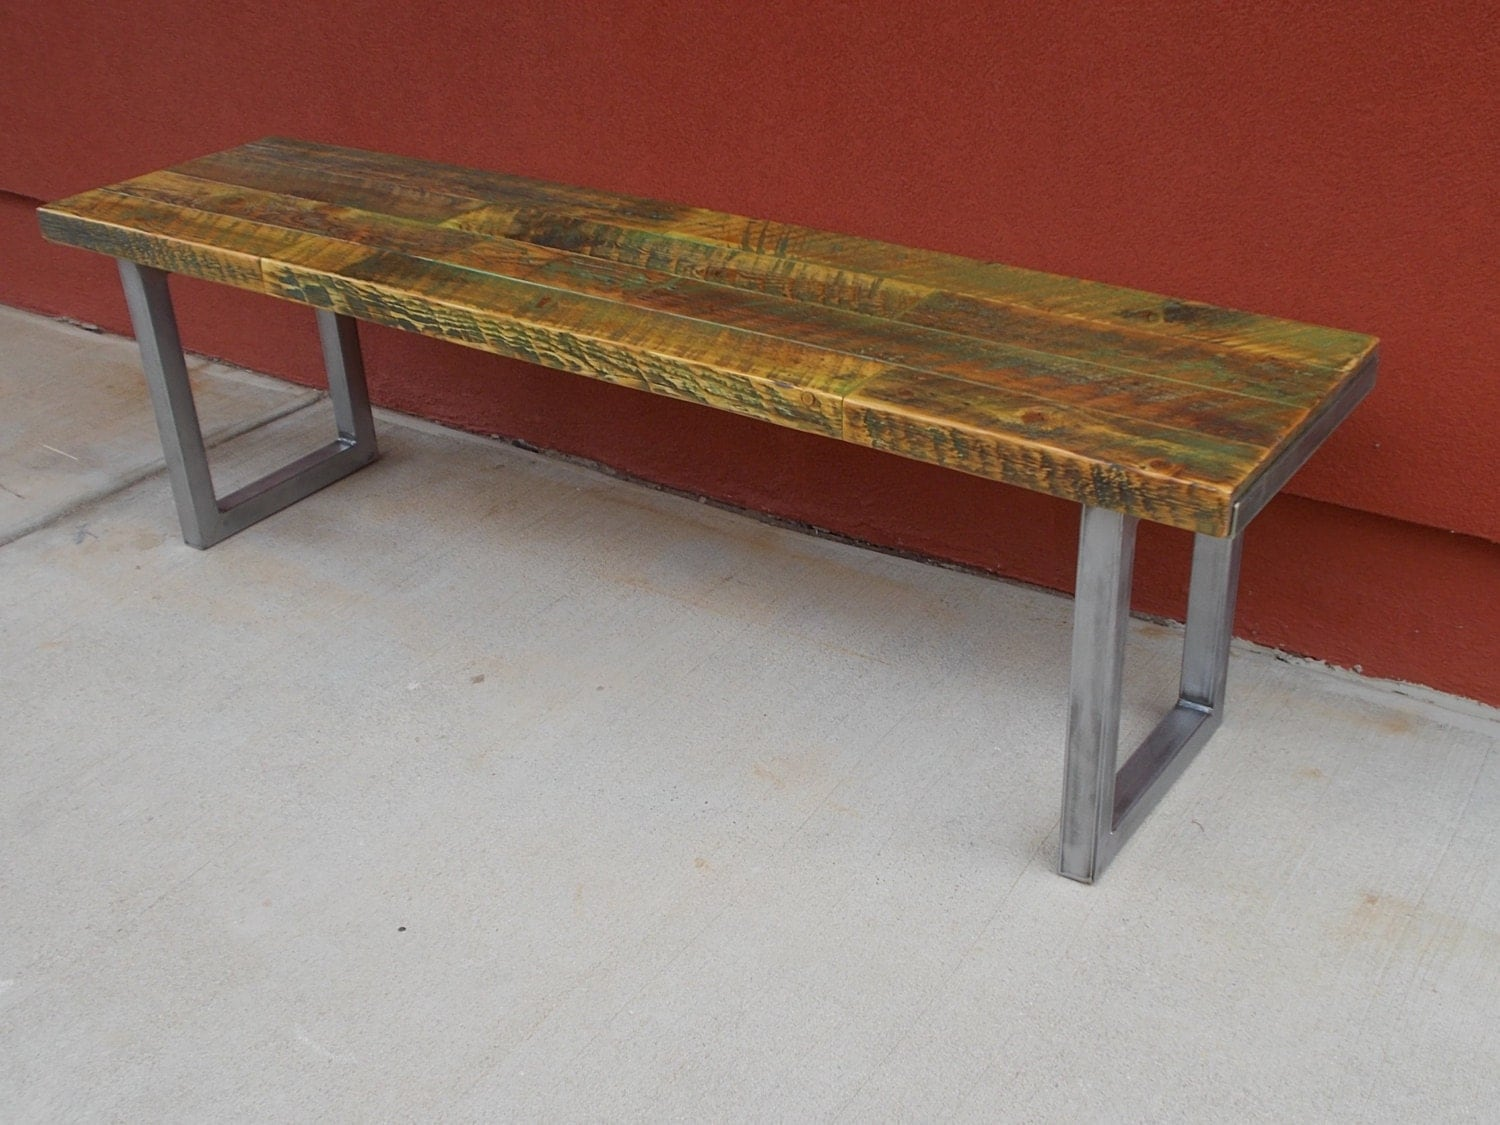 Bench Wood Bench Reclaimed Wood Bench Rustic Bench Steel